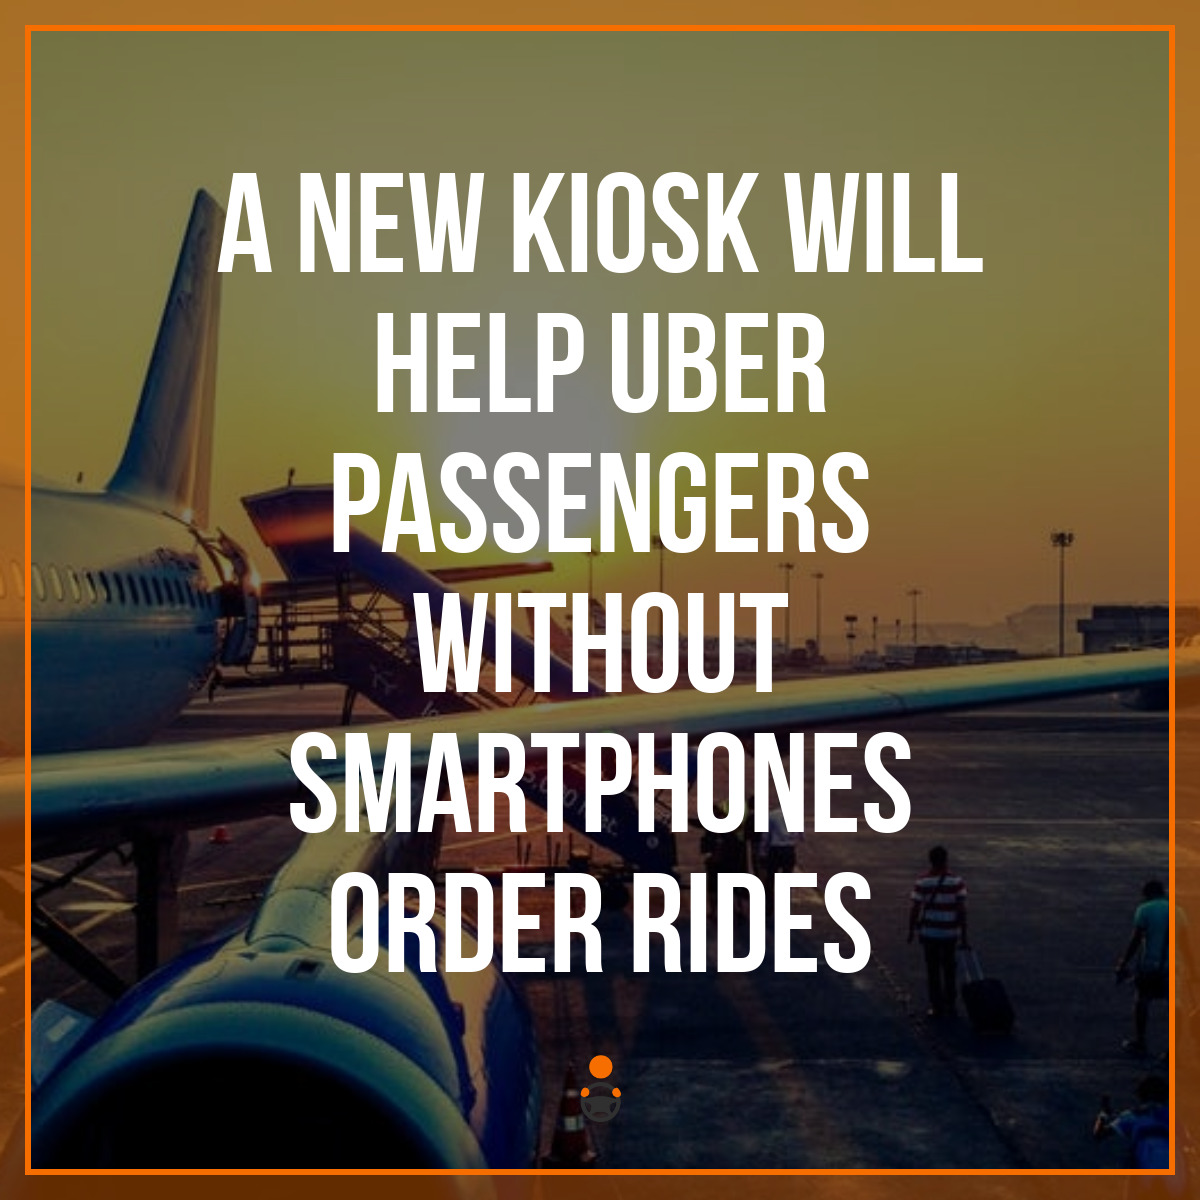 A New Kiosk Will Help Uber Passengers Without Smartphones Order Rides